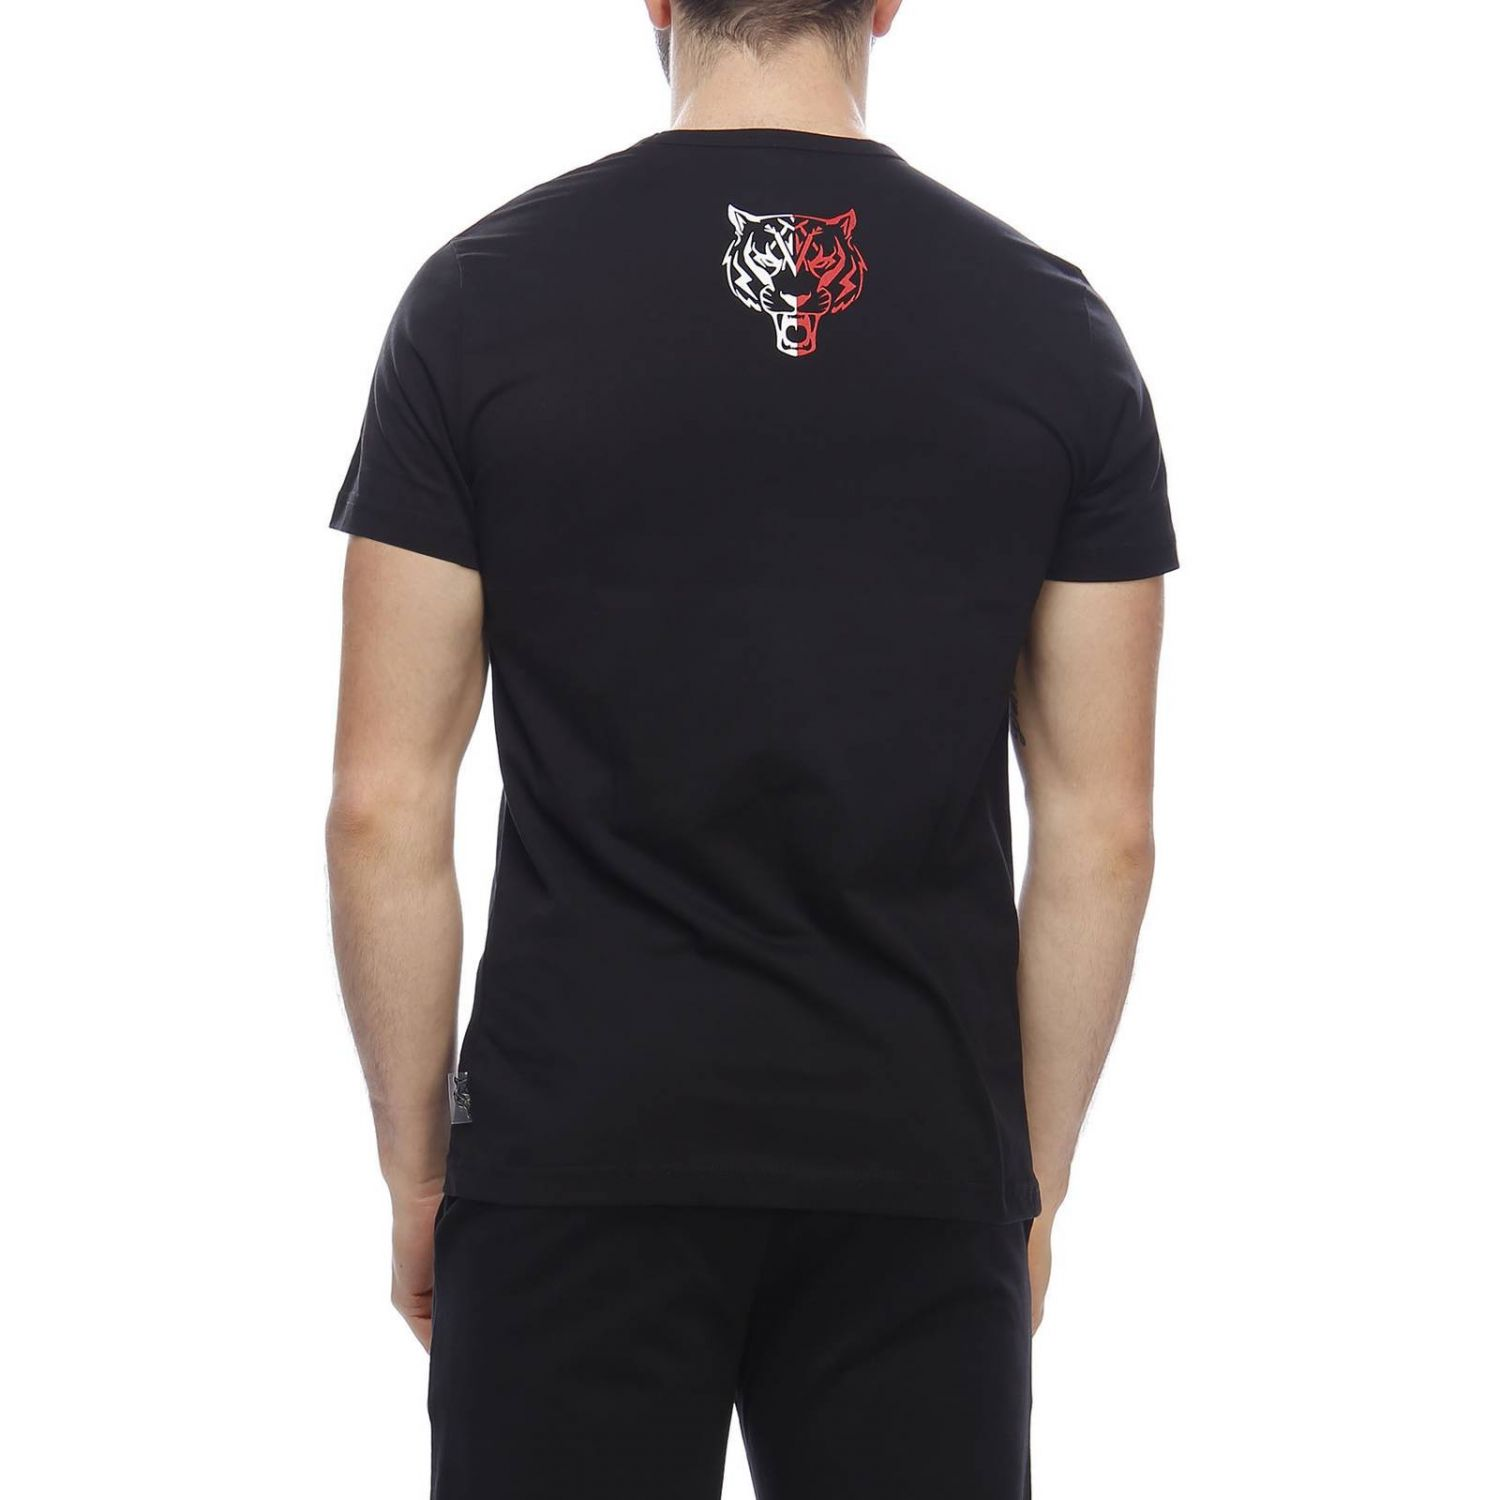 T-shirt men Plein Sport black 3